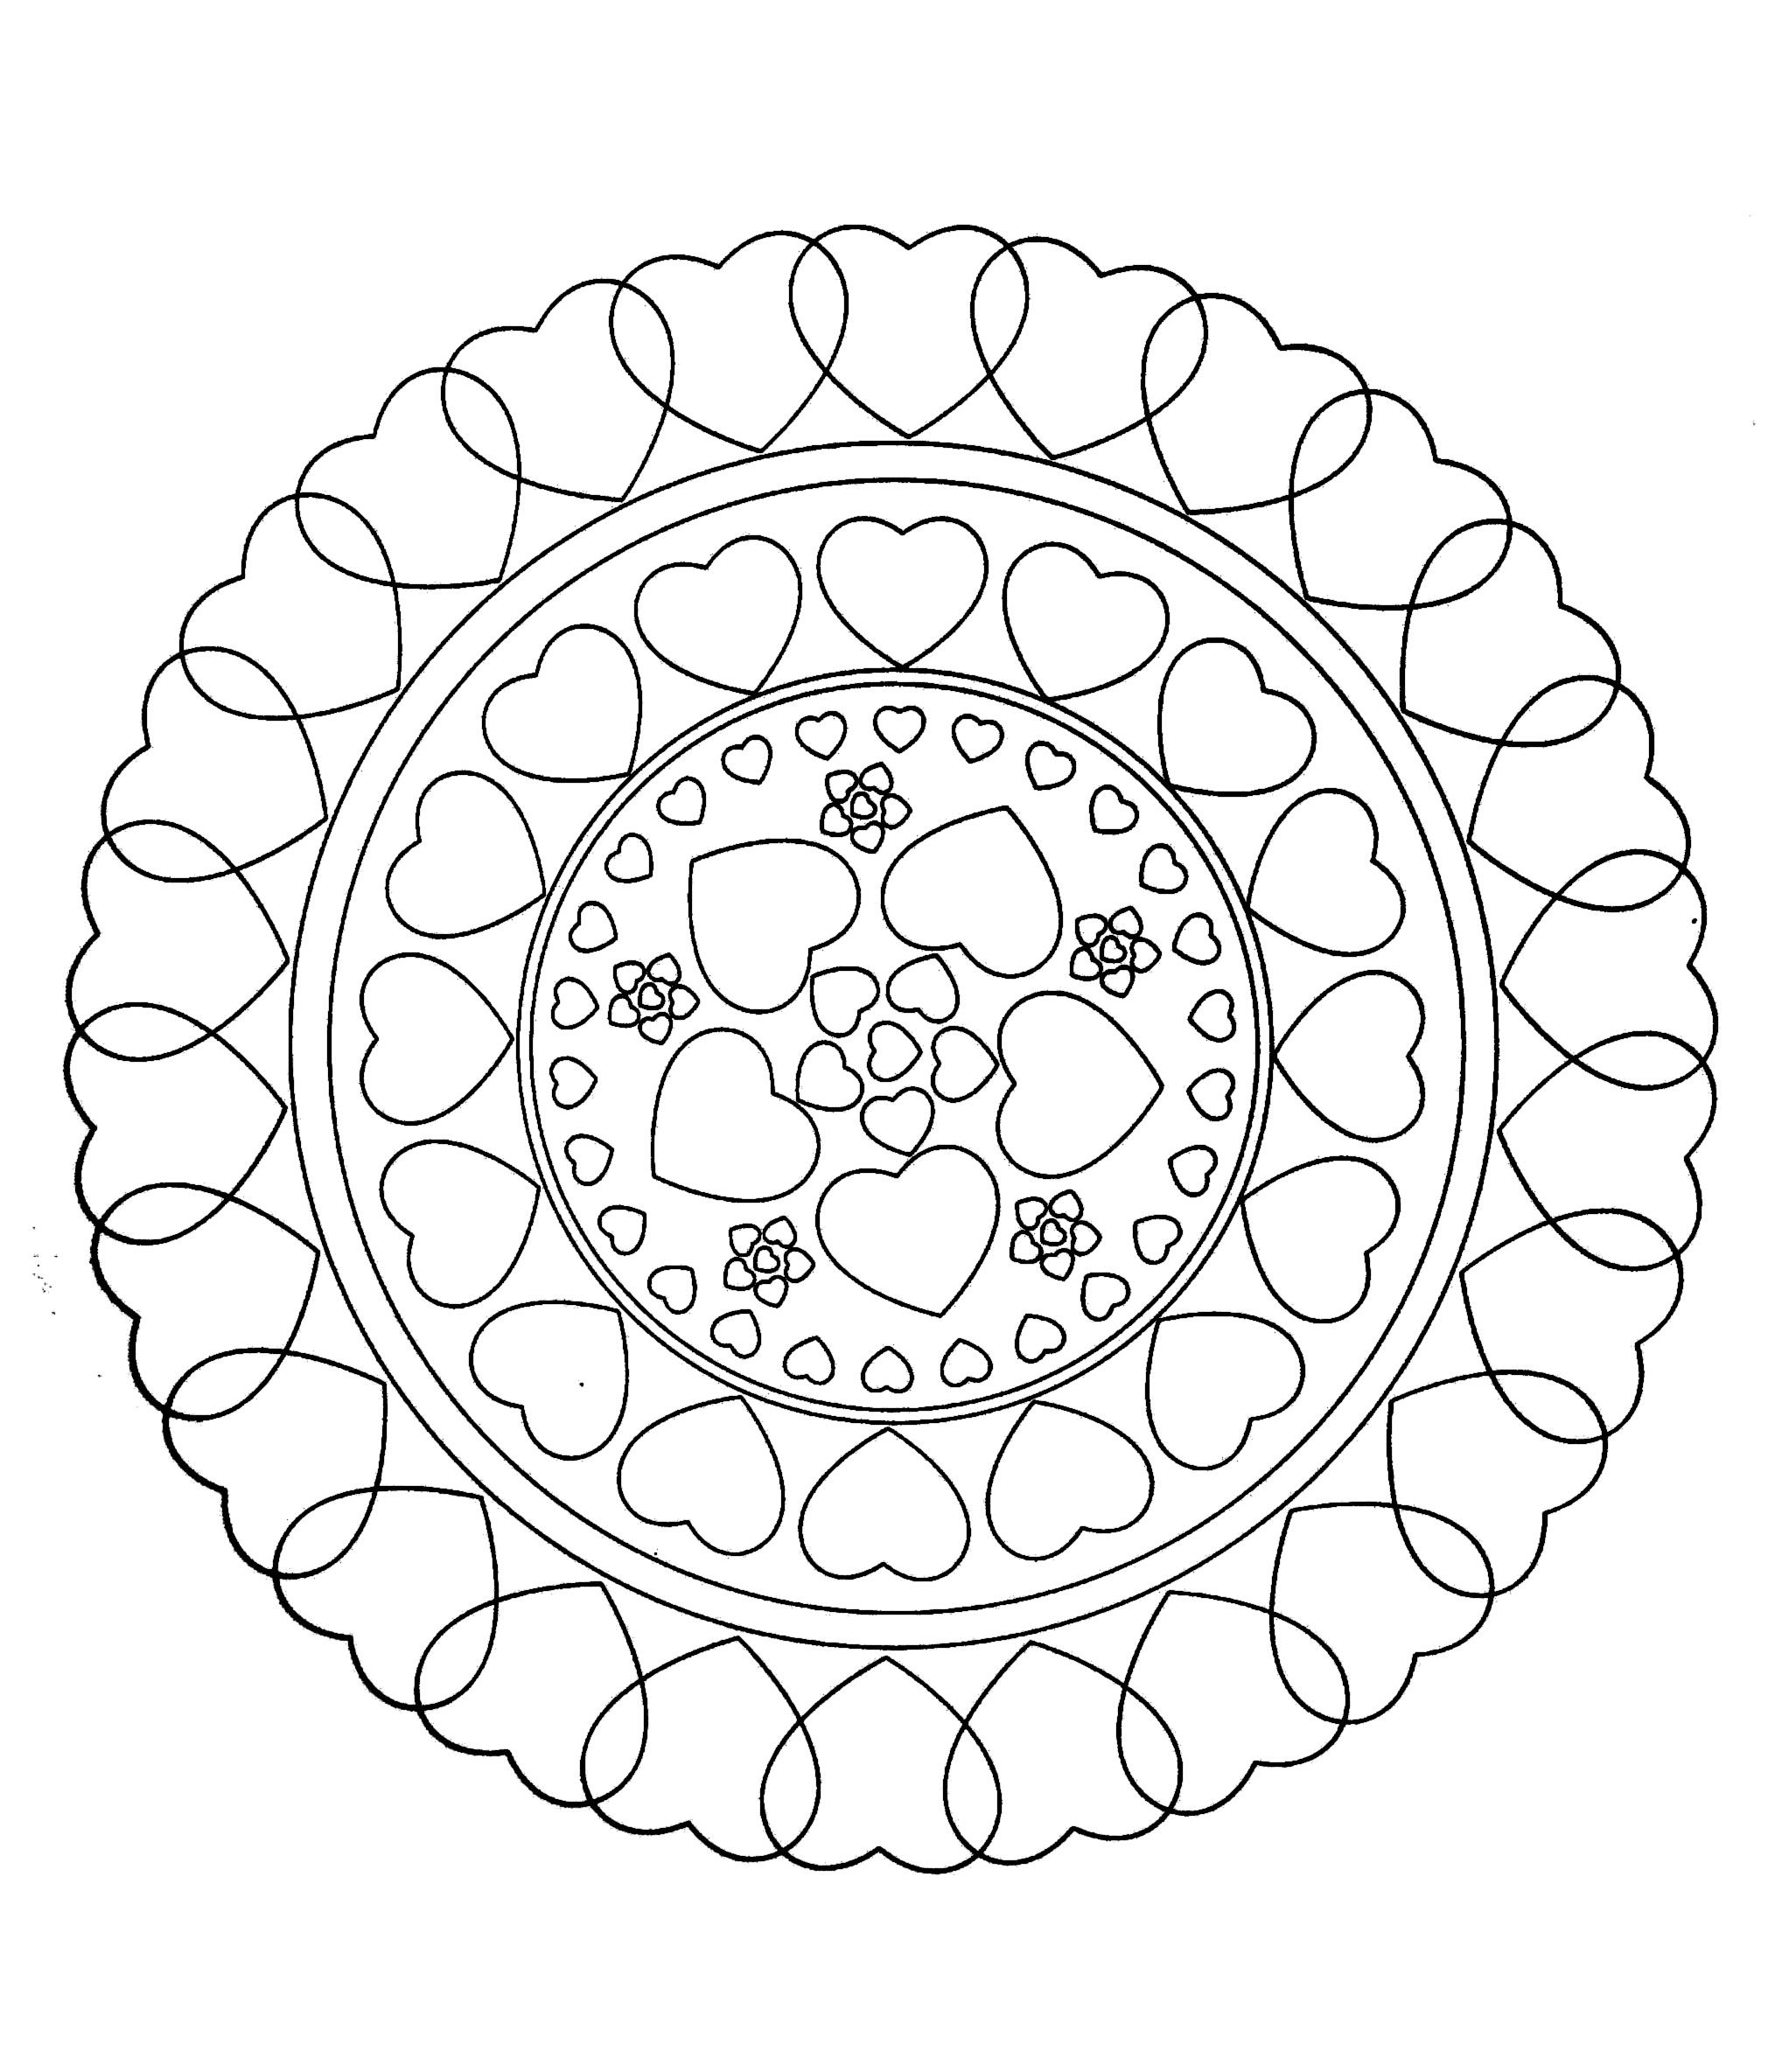 To print this free coloring page free mandala to color hearts